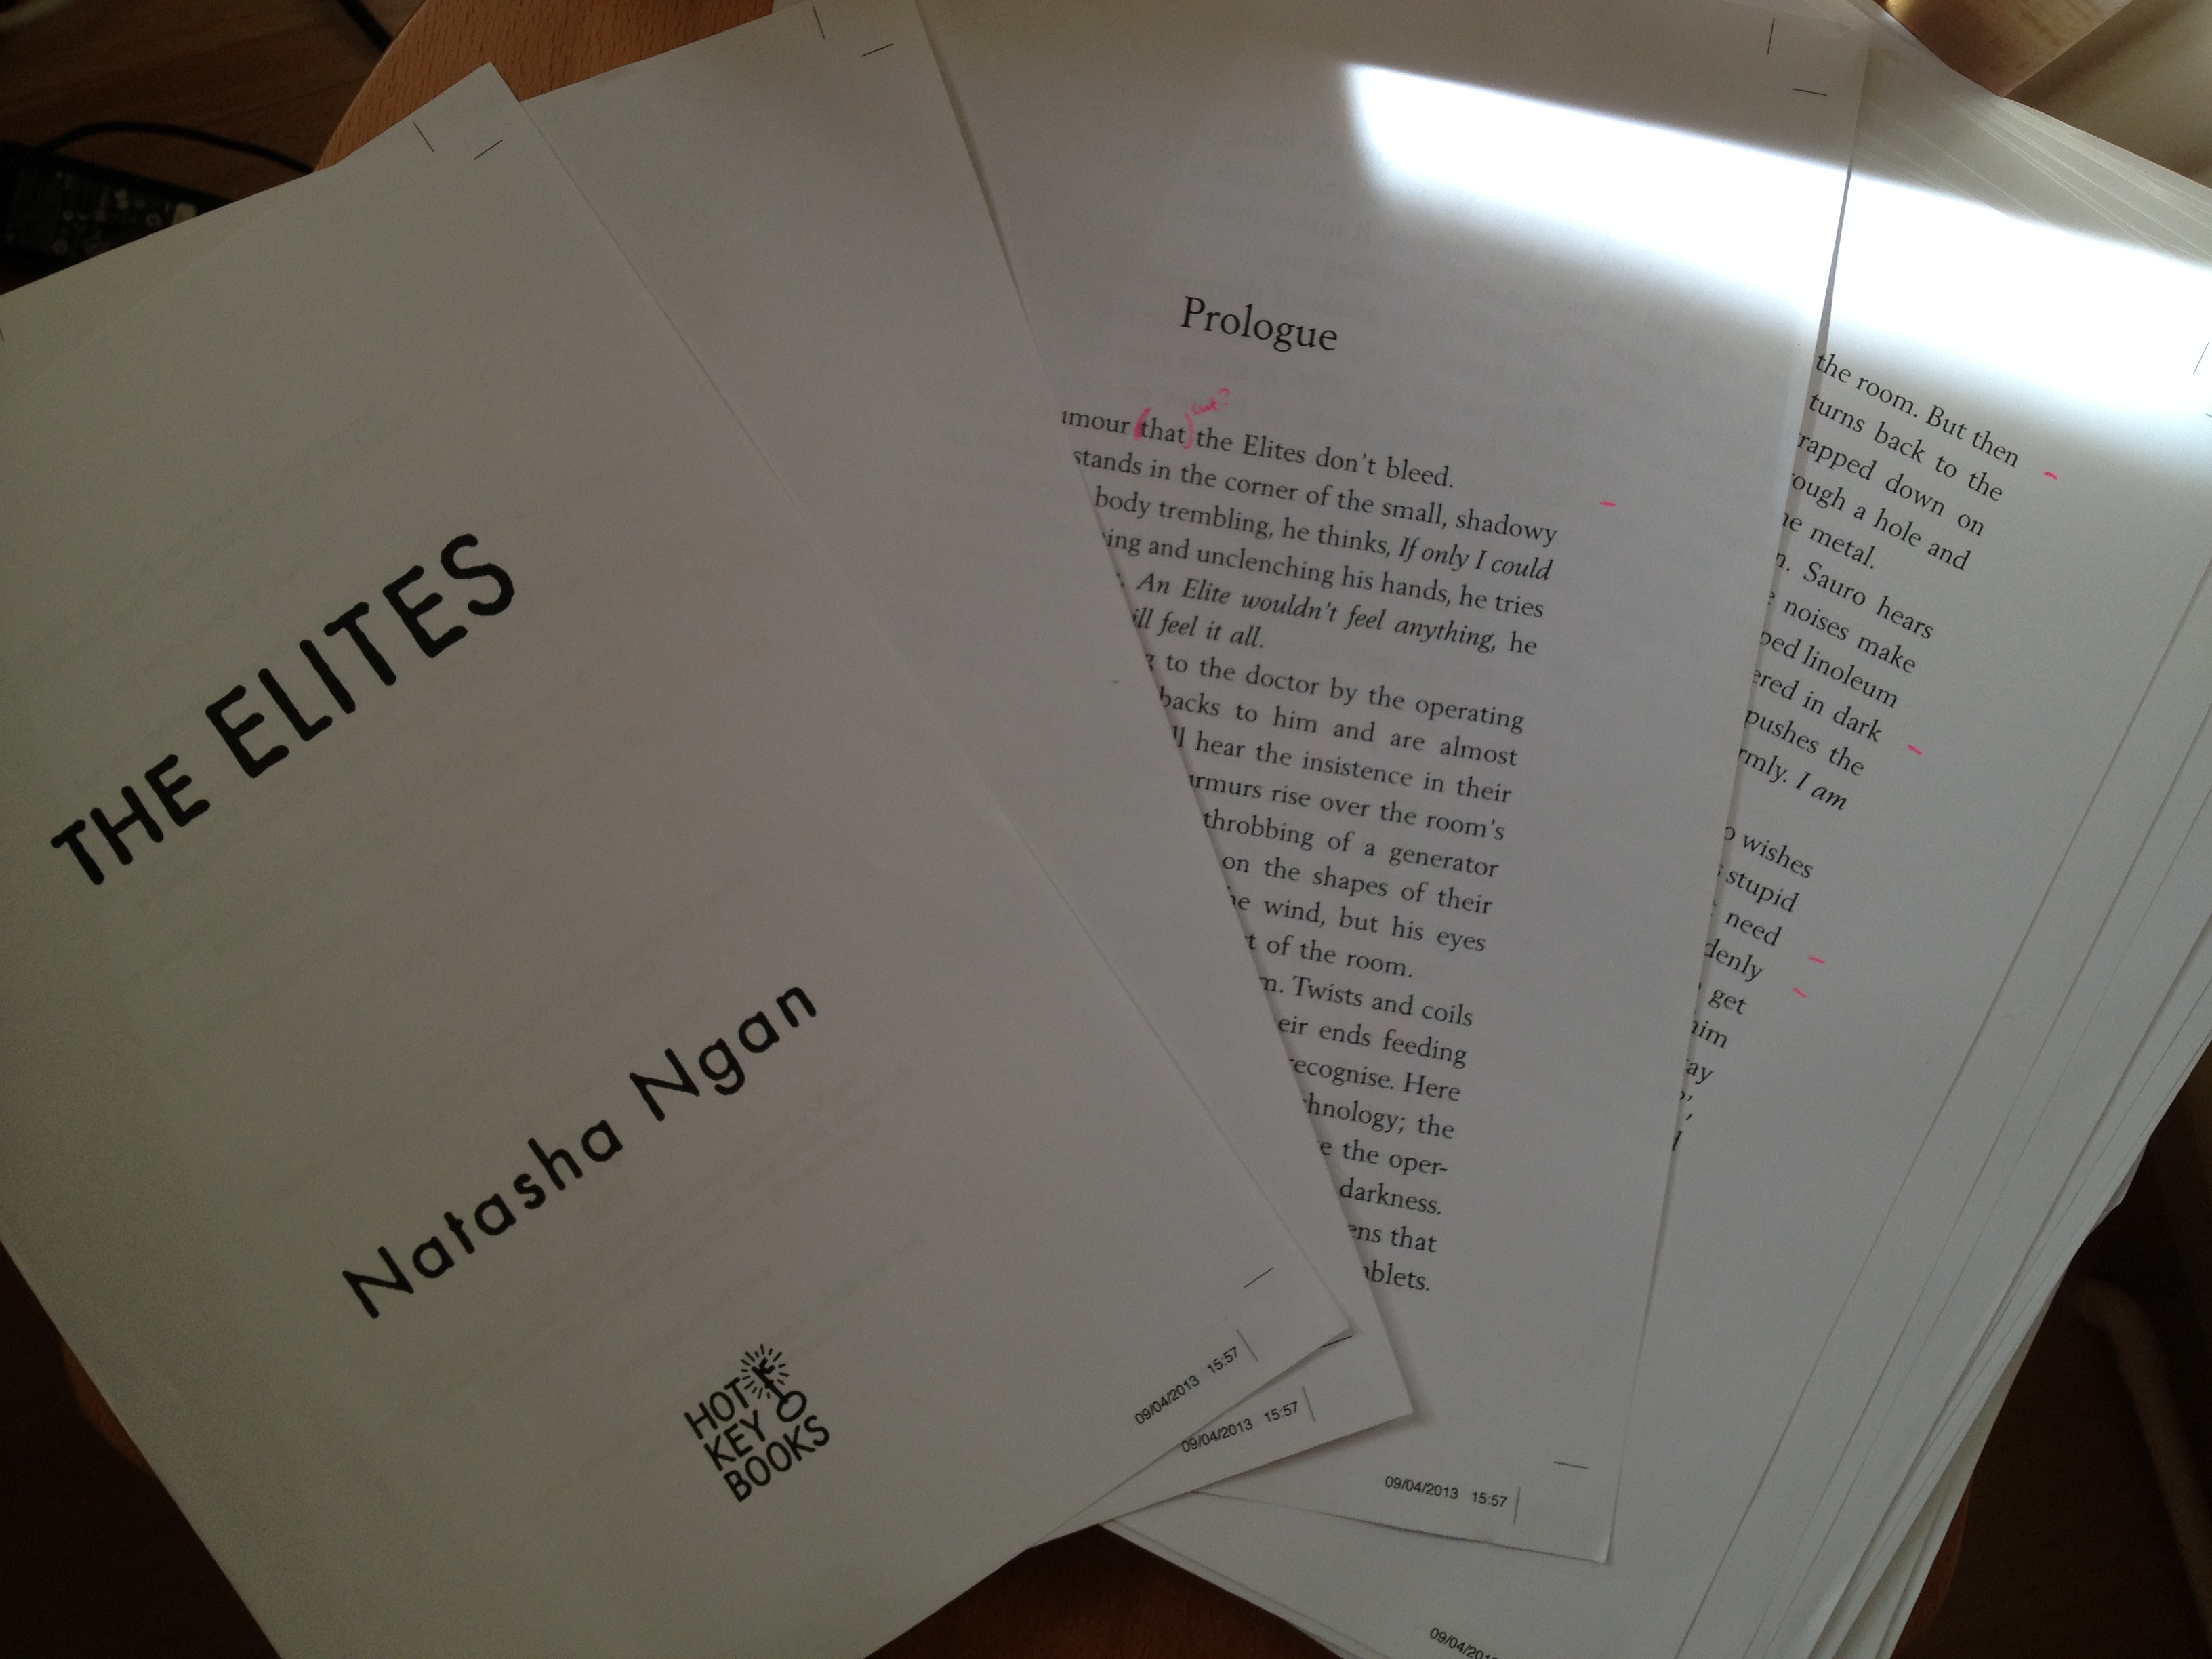 The Elites by Natasha Ngan page proofs